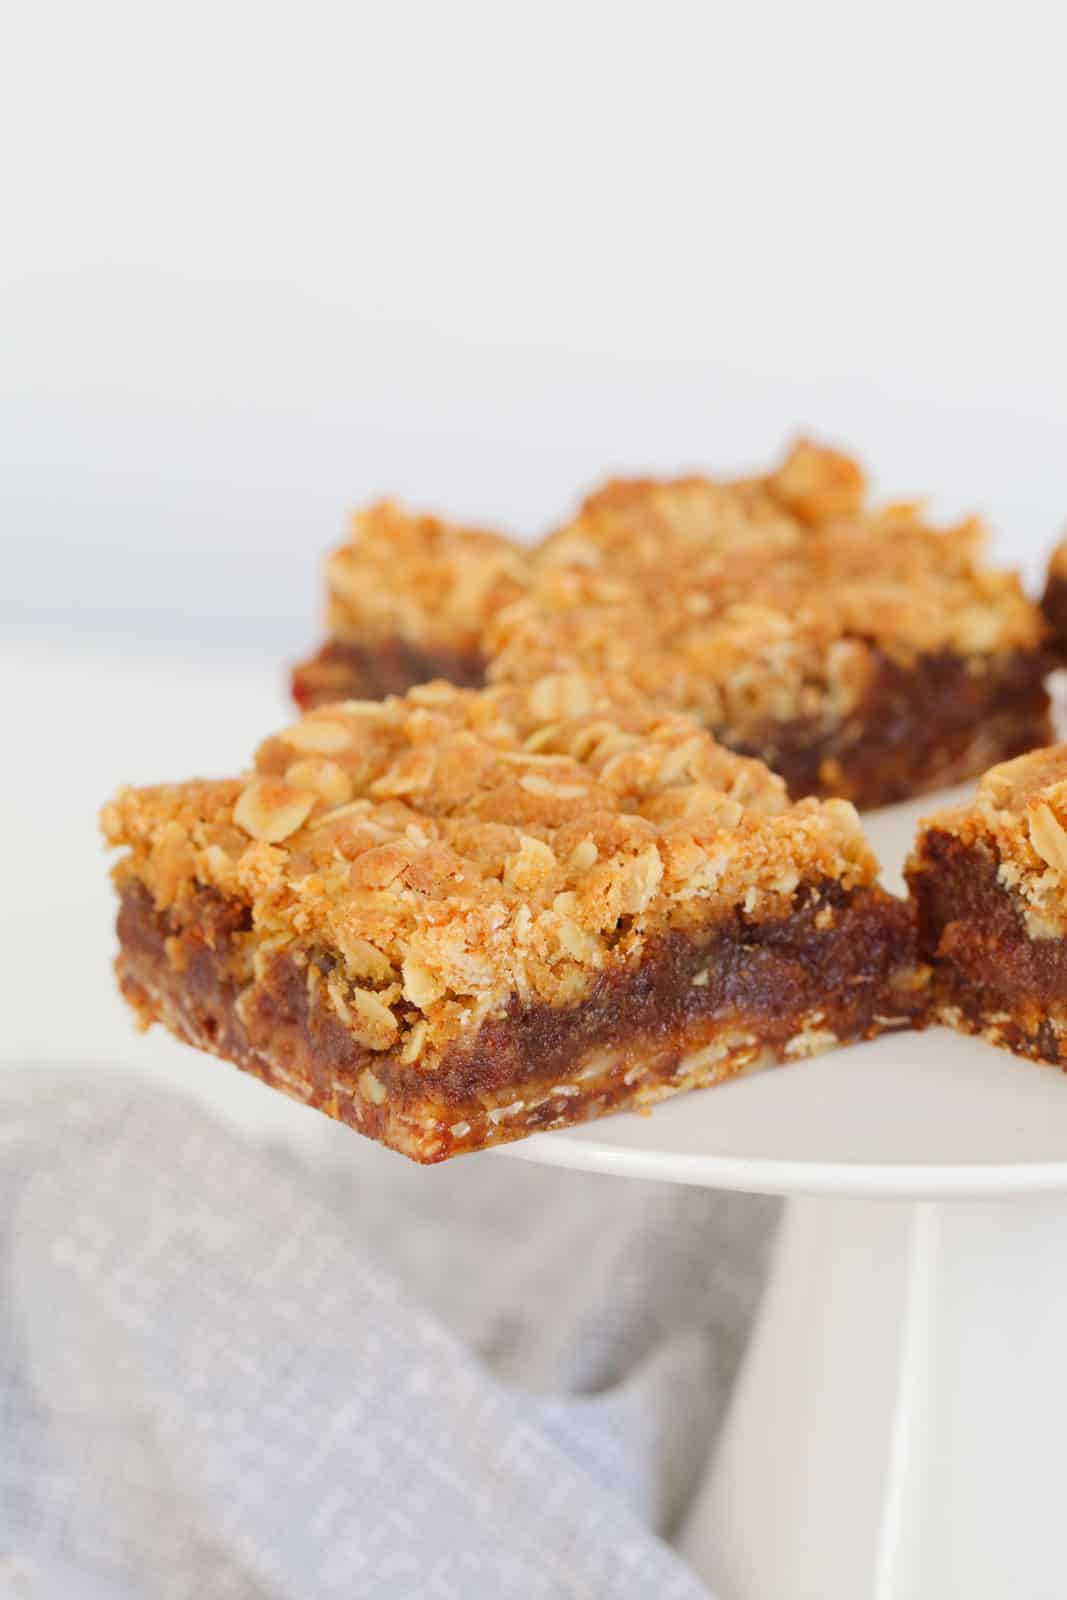 A layered slice filled with dates and a rolled oats crumble topping